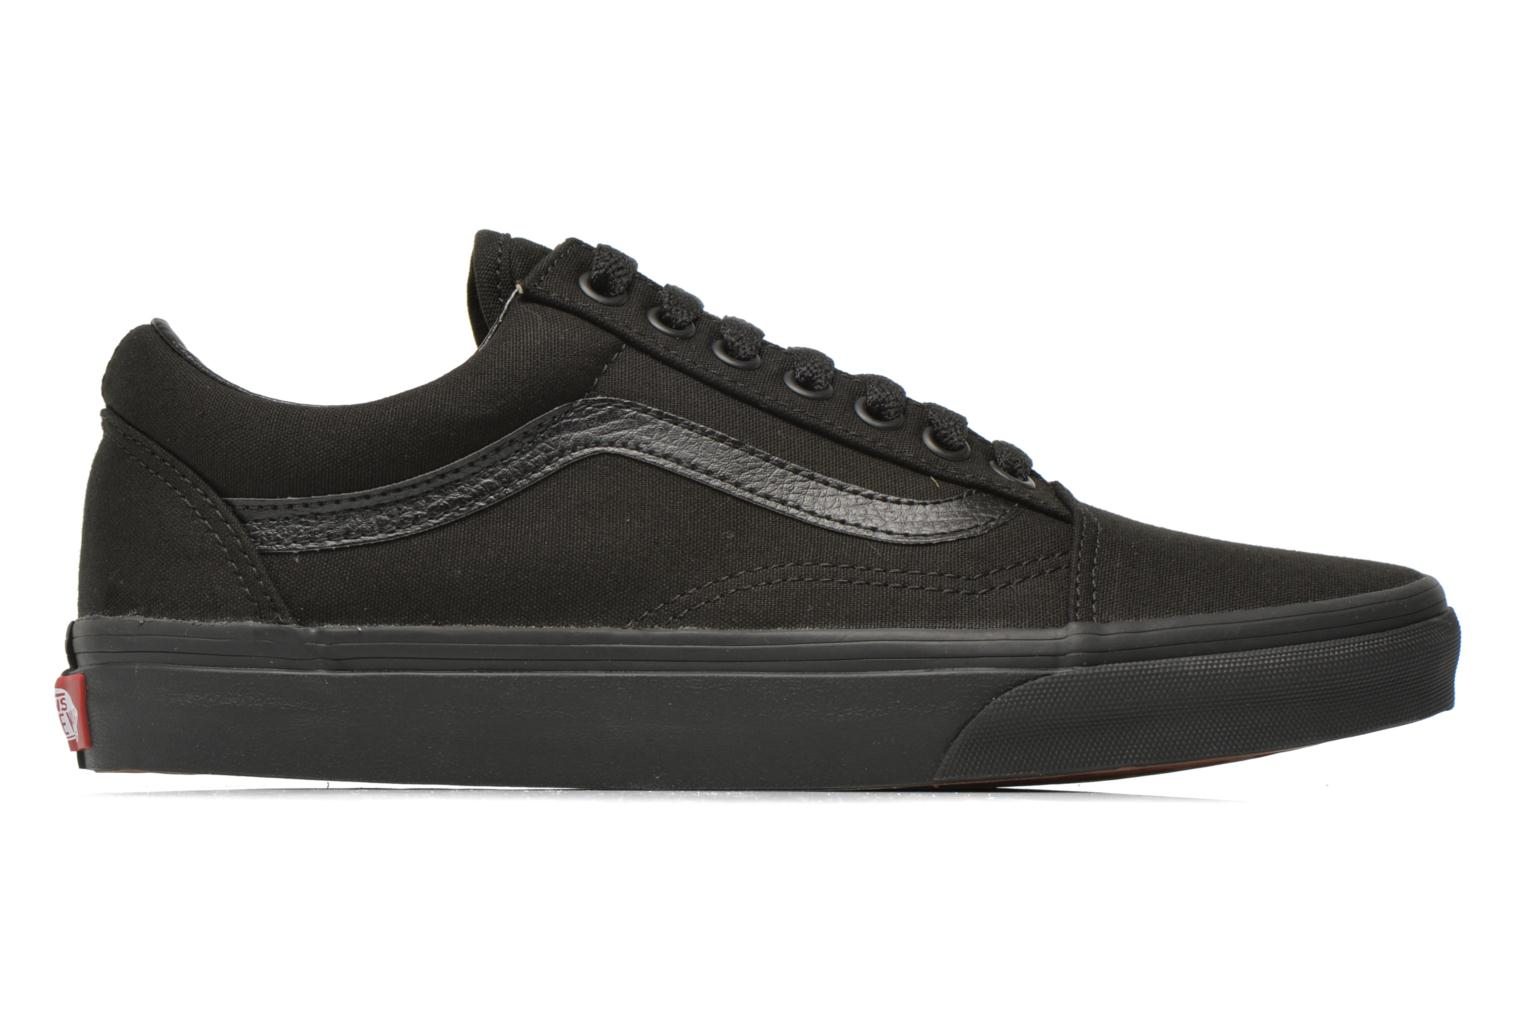 Old Skool Black/Black (Canvas)